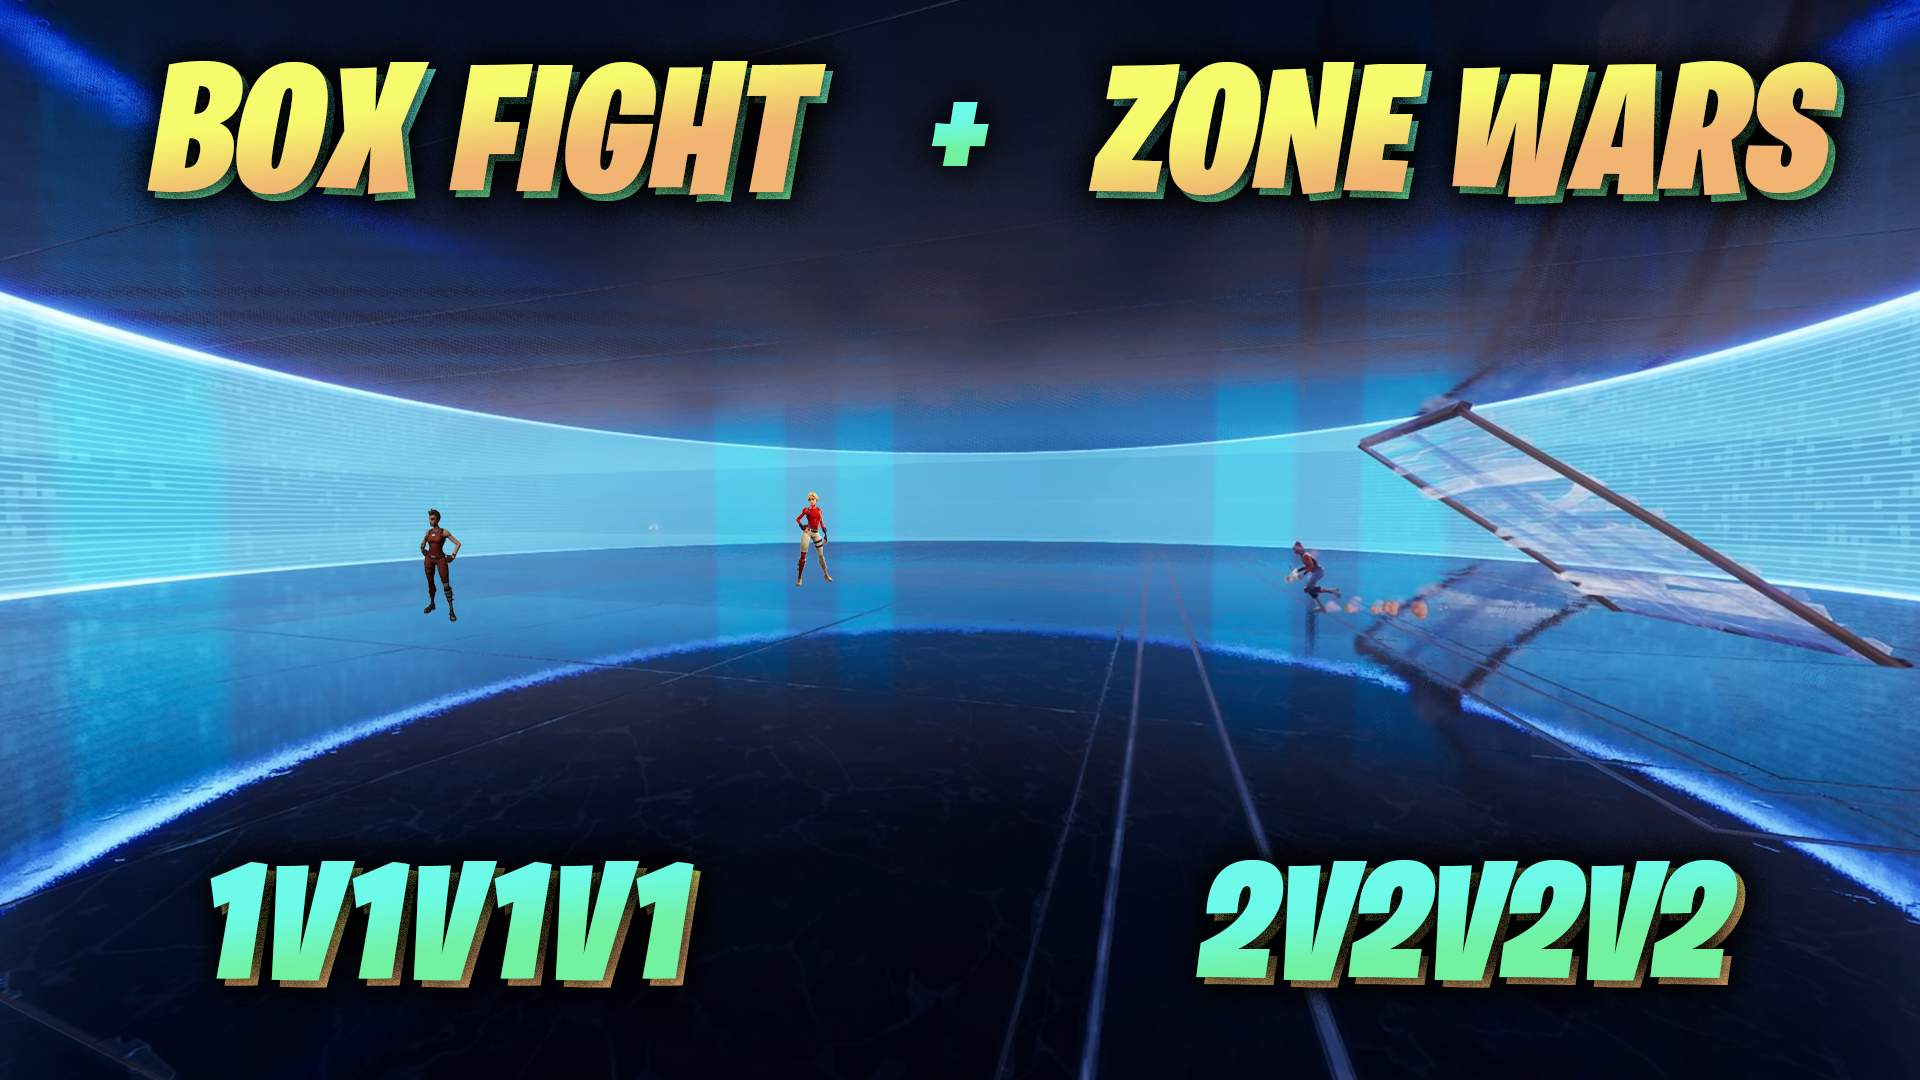 BOXFIGHT + ZONE WARS [1V1V1V1][2V2V2V2]